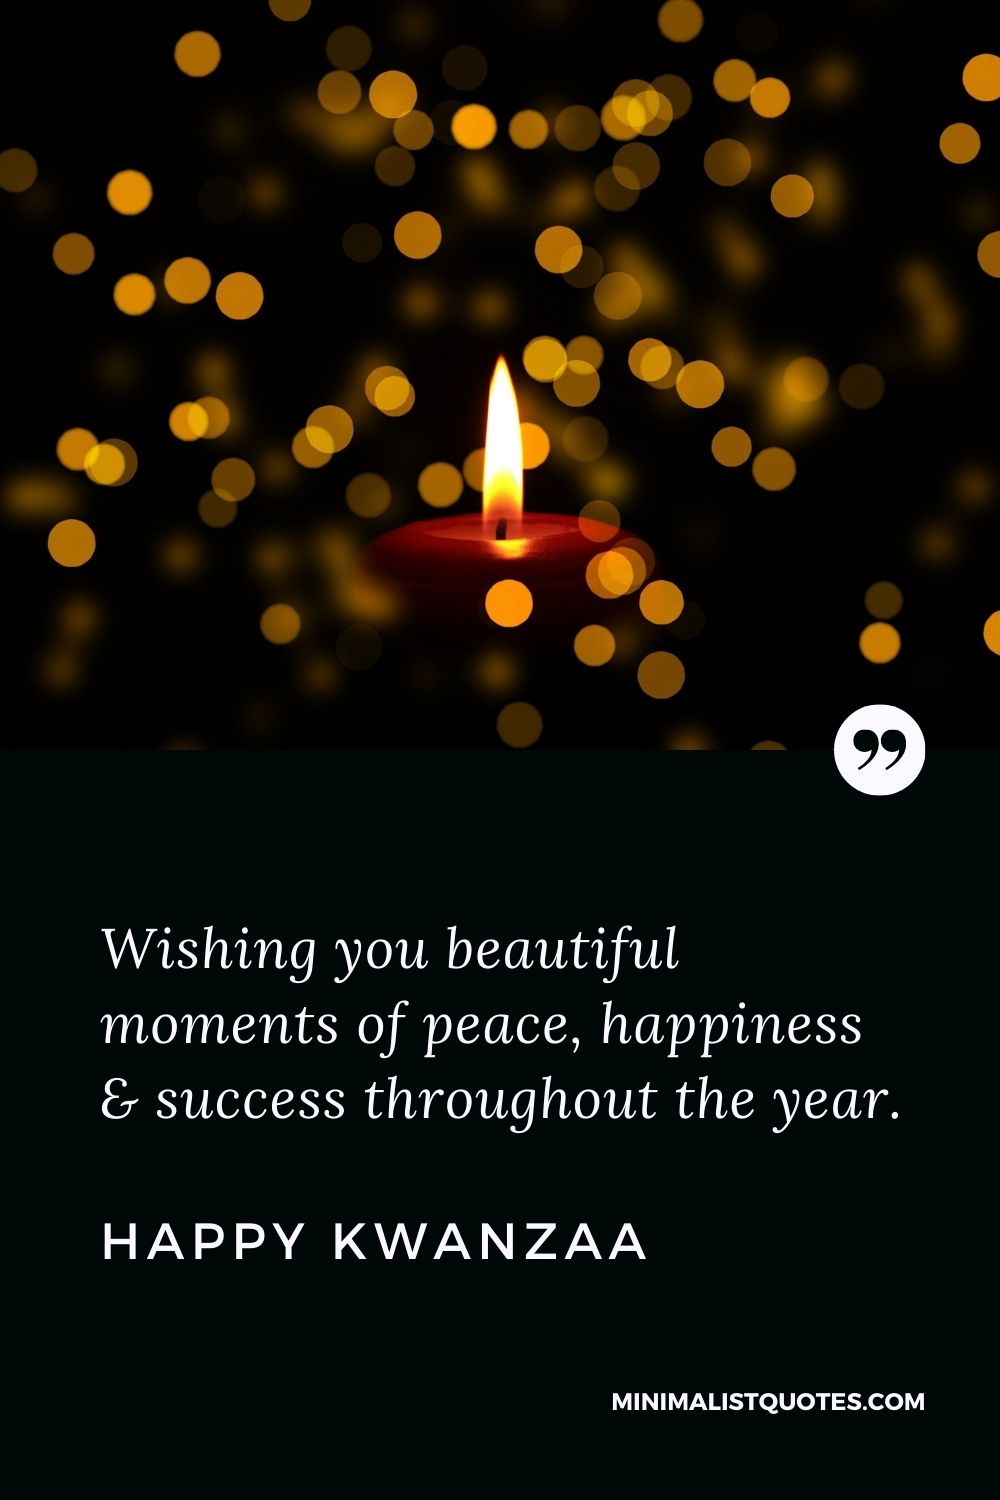 Kwanzaa Quote, Wish & Message With Image: Wishing you beautiful moments of peace, happiness & success throughoutthe year. Happy Kwanzaa!